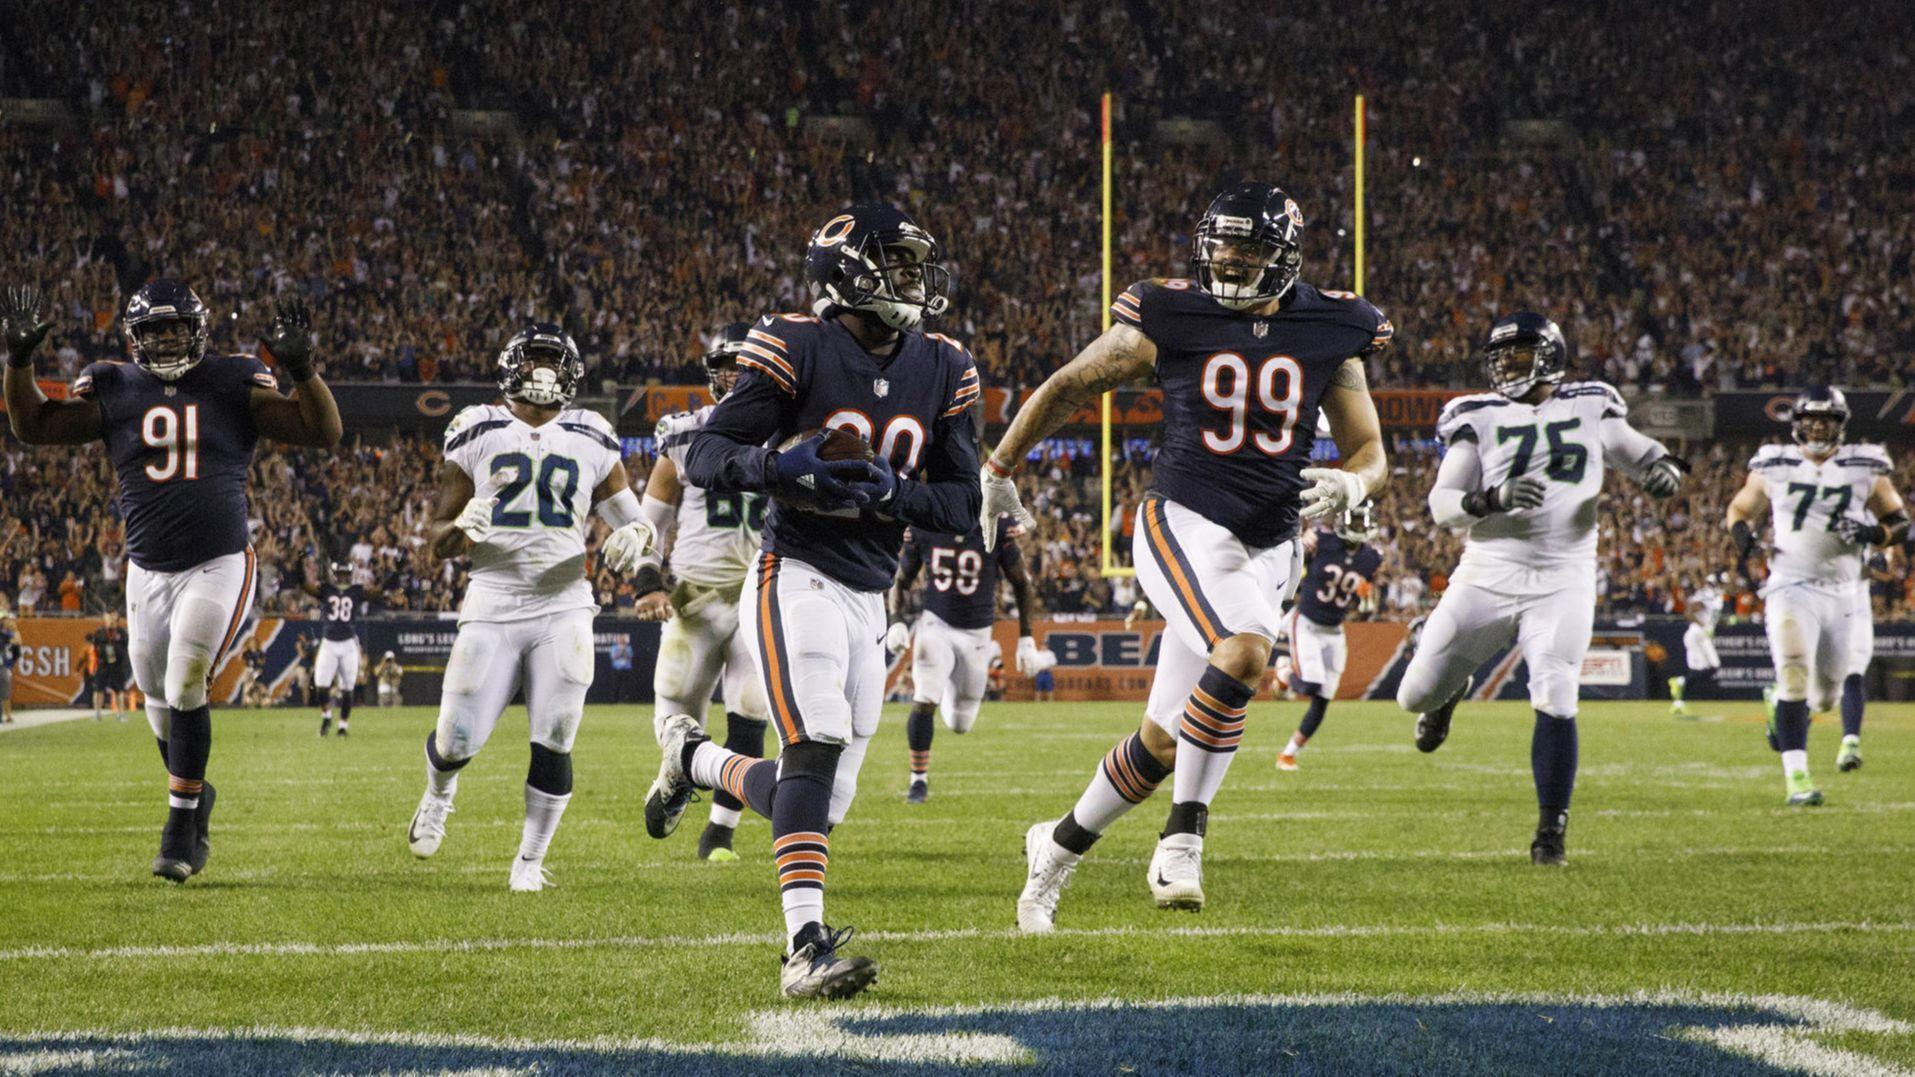 Brad Biggs  10 thoughts on the Bears  24-17 win over the Seahawks - Chicago  Tribune eaac1aa96